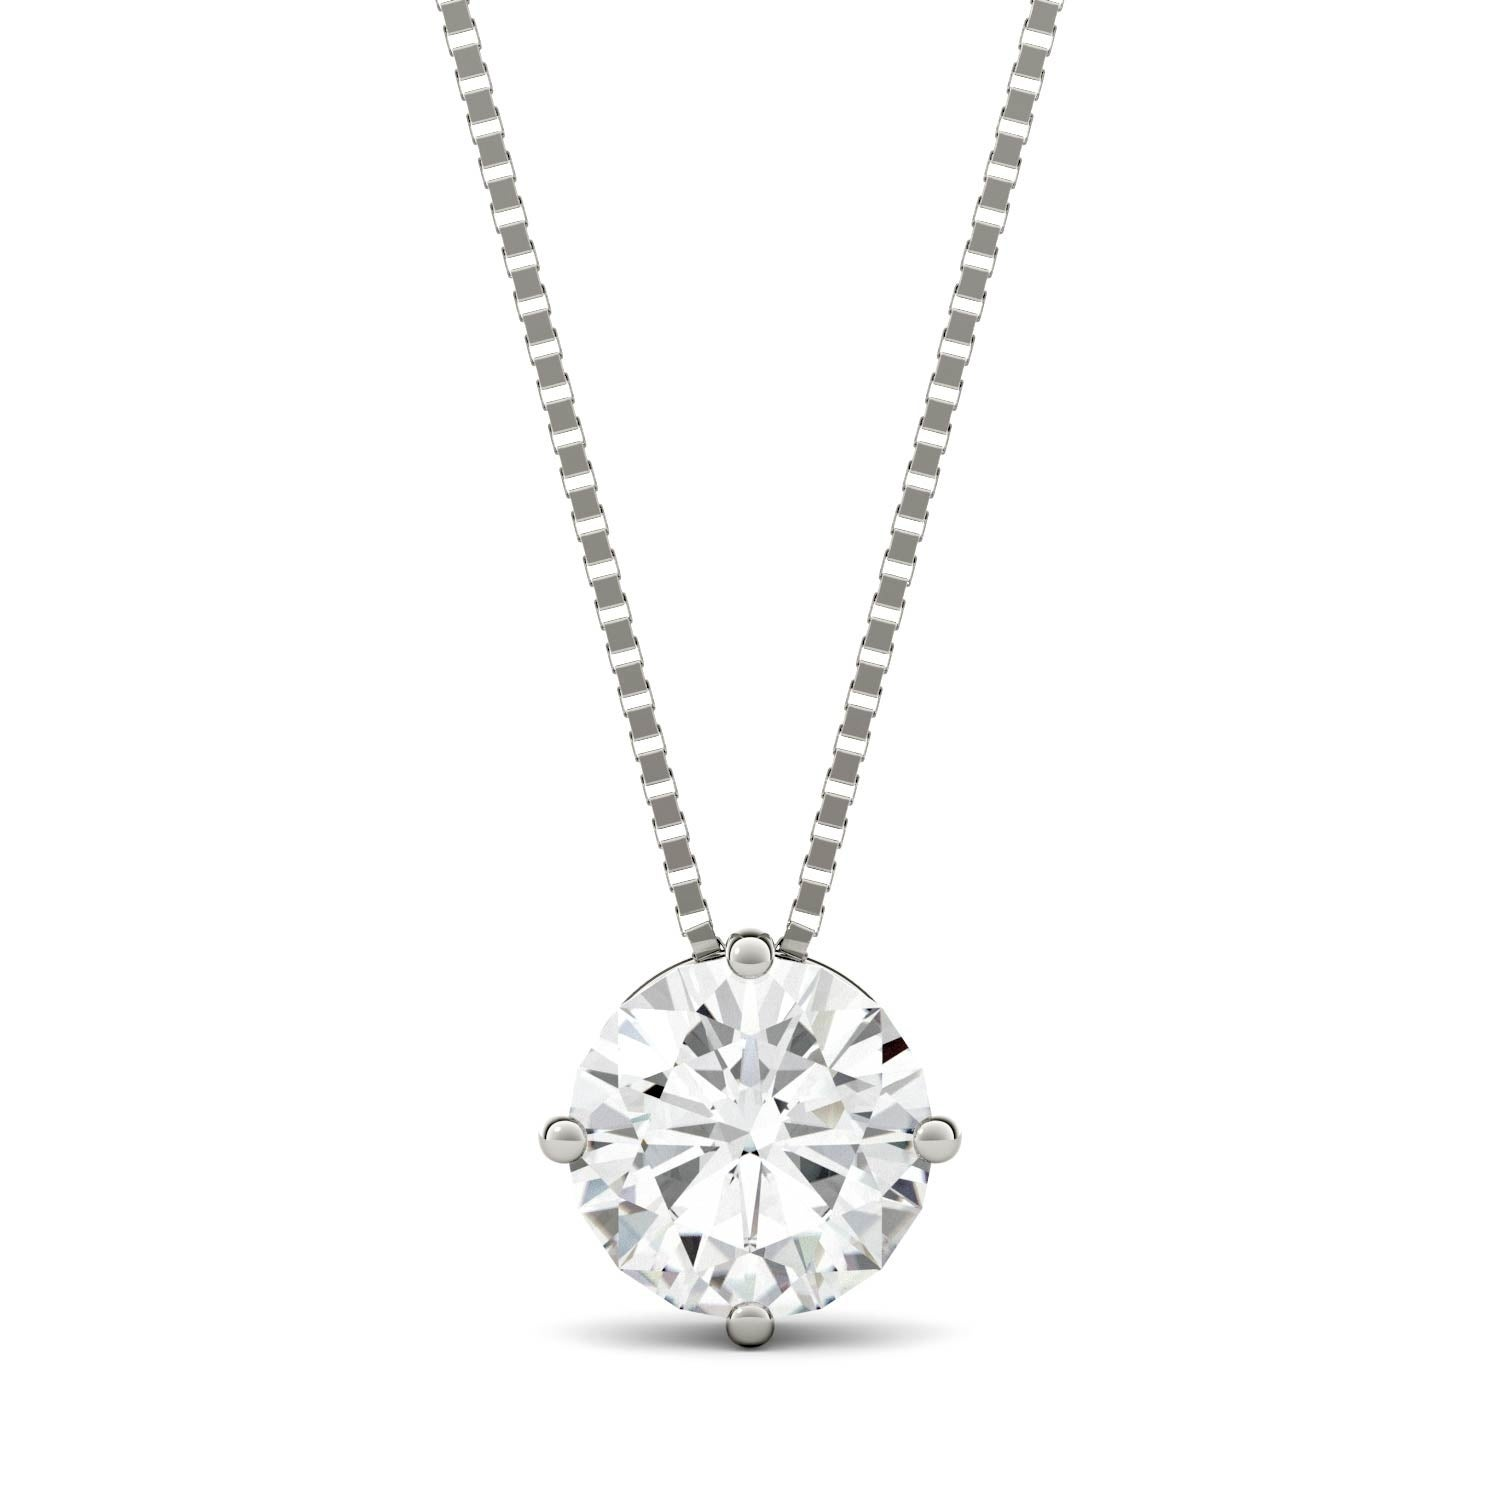 bullion necklace american silver rope chain l moissanite grams pendant room with property